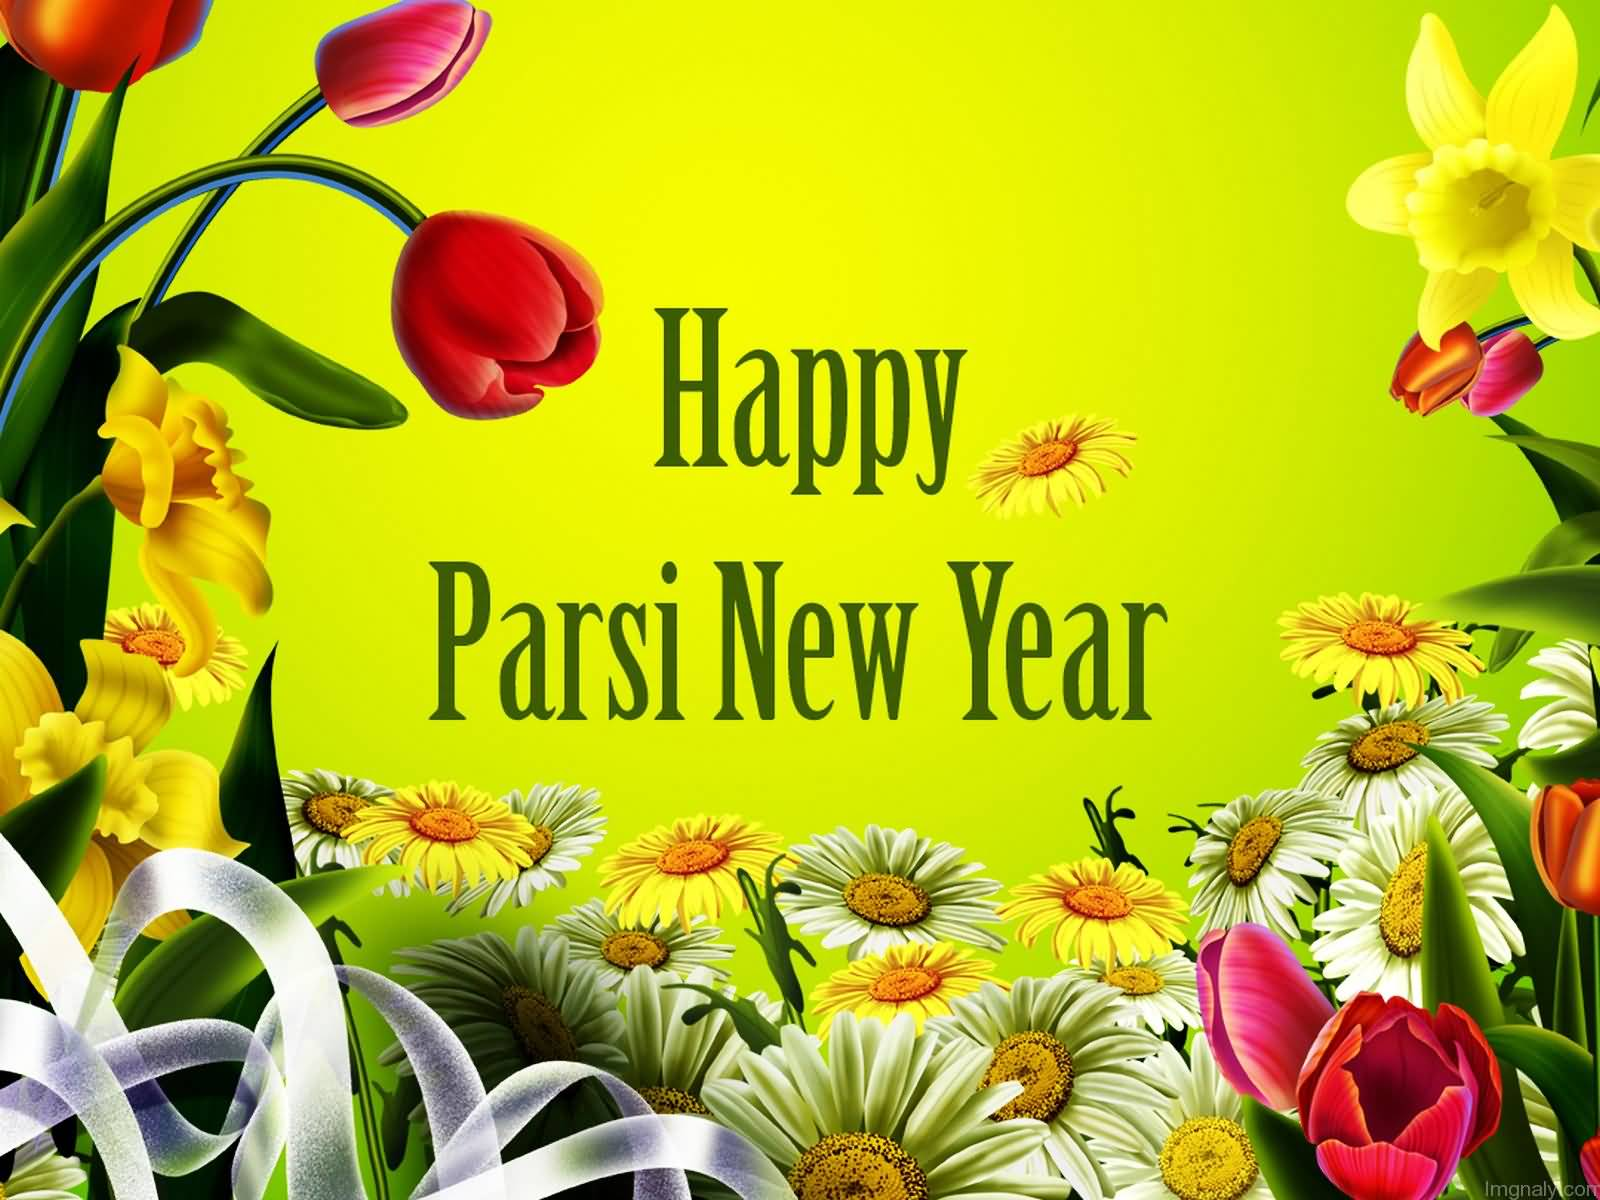 52 latest pictures and images of navroz greetings happy parsi newyear greeting card kristyandbryce Images